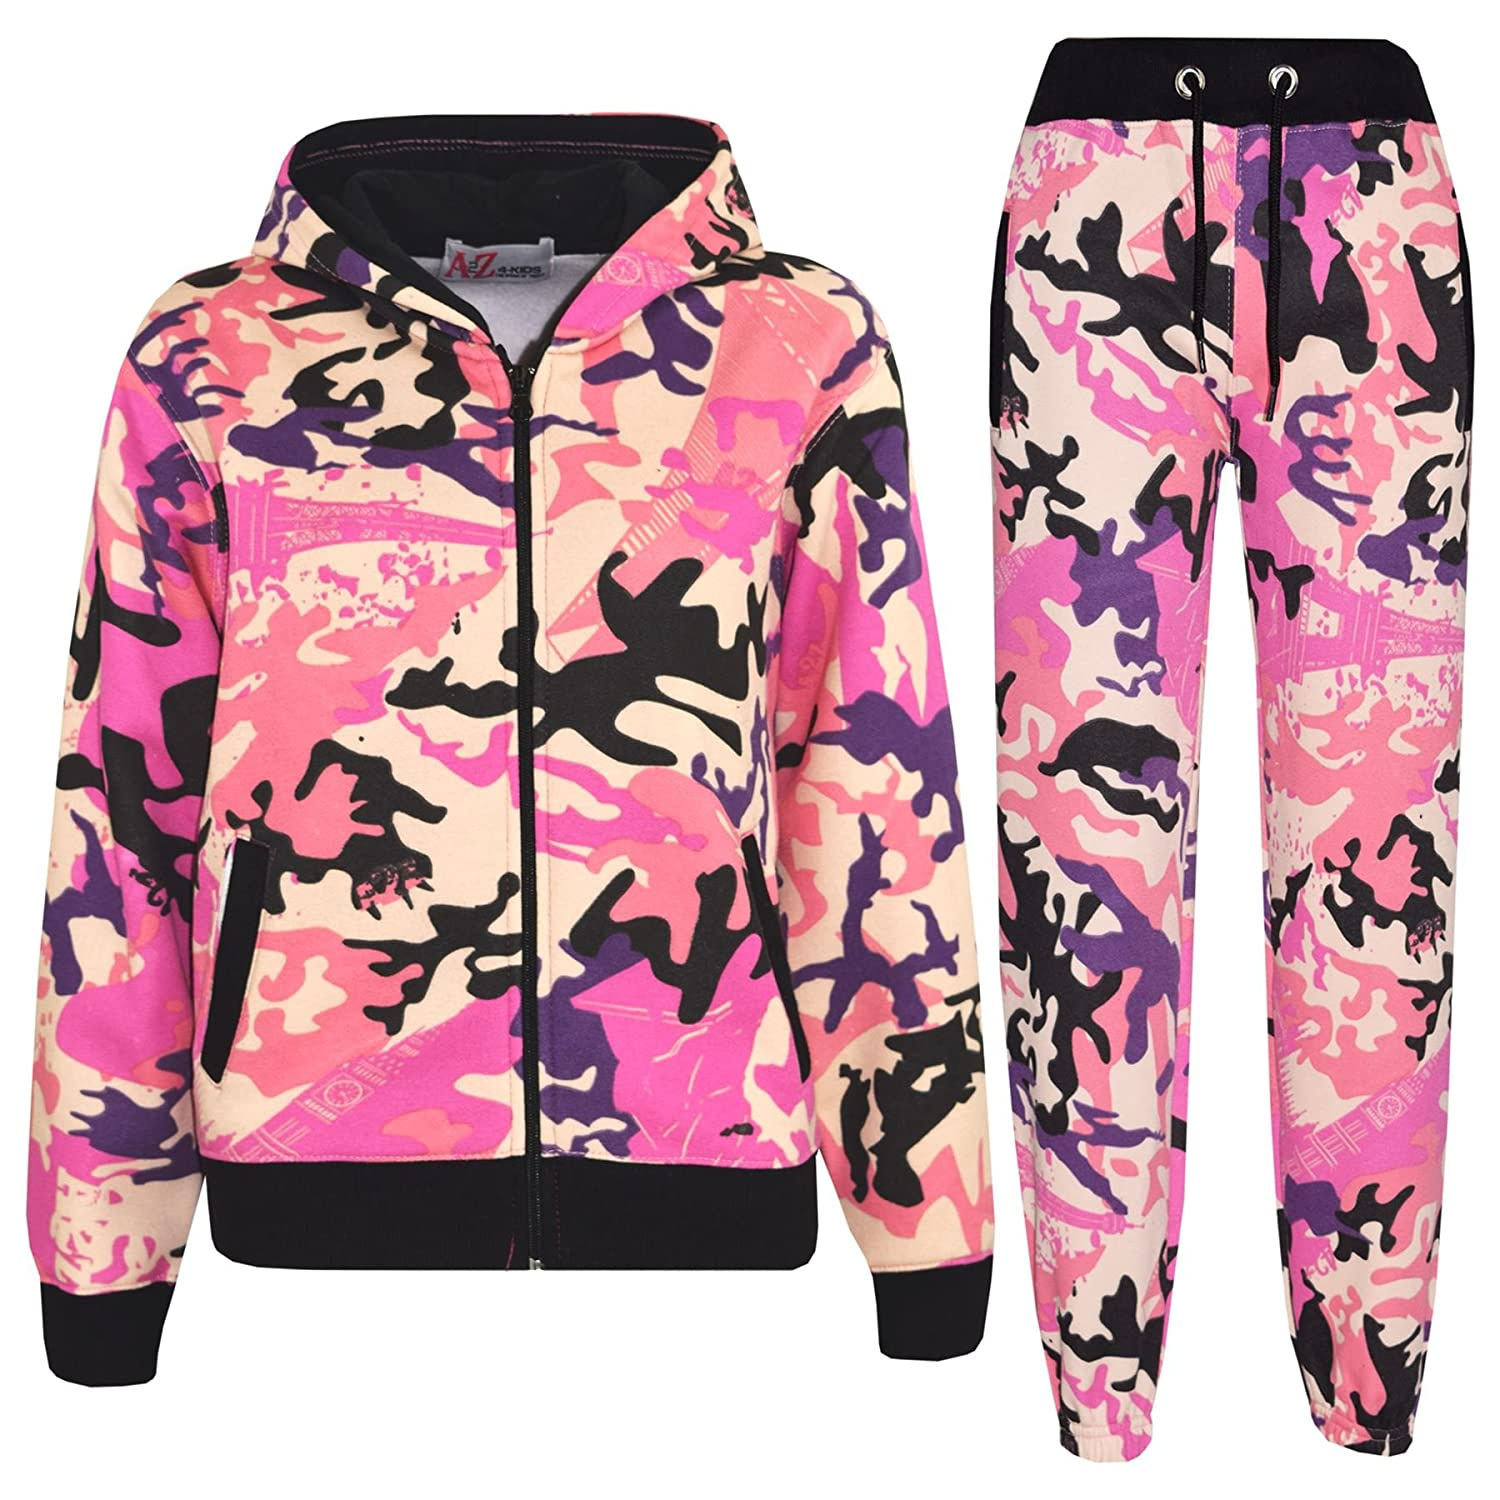 A2Z® Kids Tracksuit Boys Girls Designer's Camouflage Jogging Suit Top Bottom 5-13 Yr